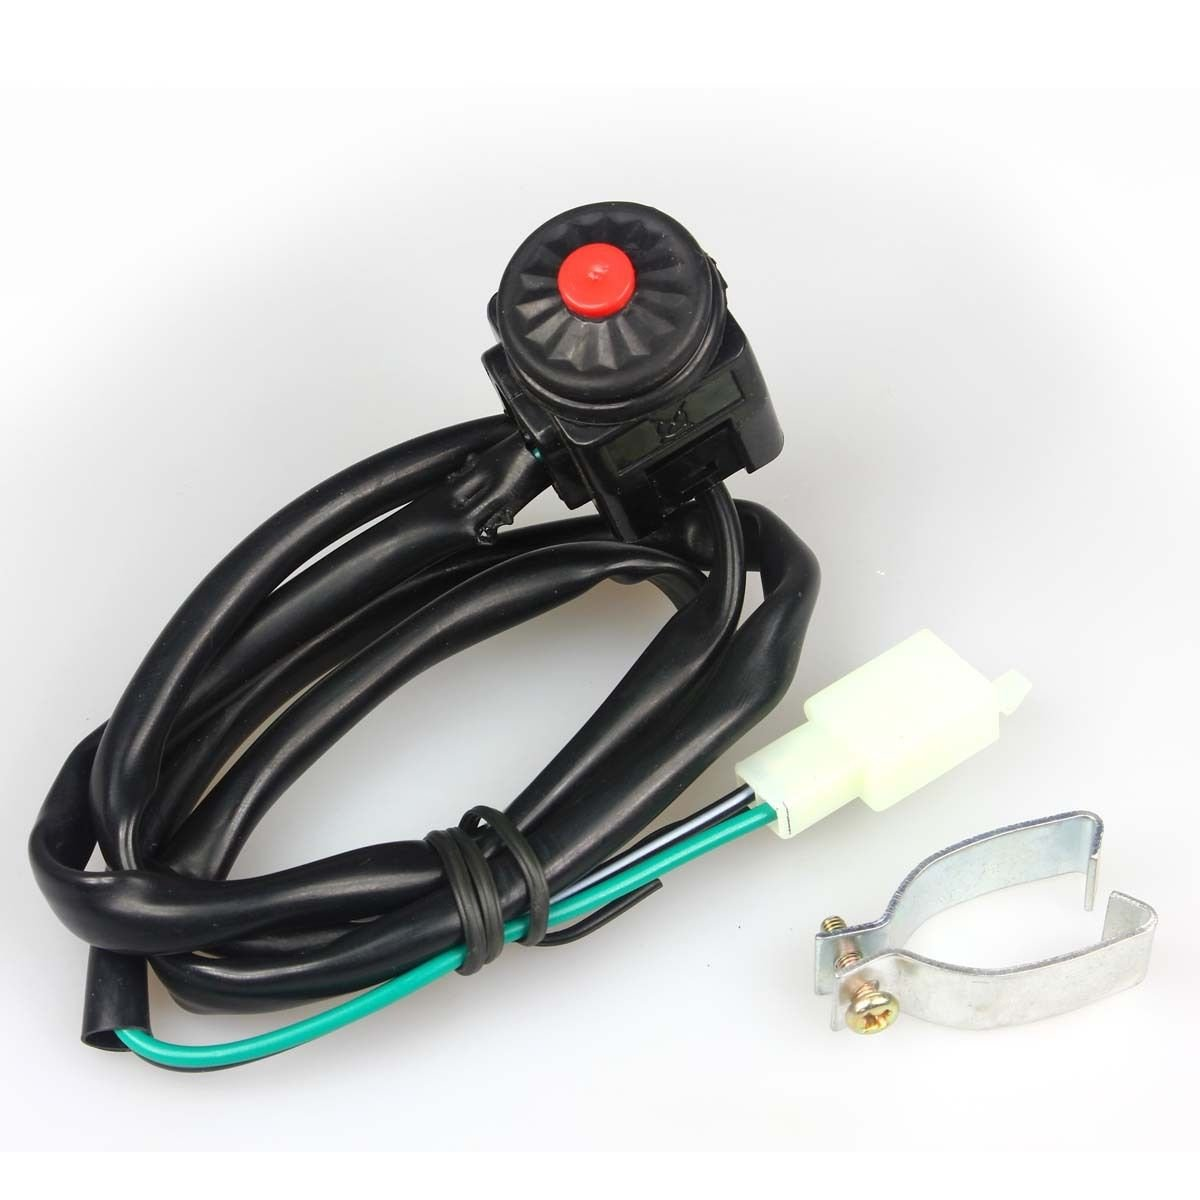 Wingsmoto Kill Switch Dirt Pit Bike Motorcycle Universal Honda Xr80 Wiring 2 Wires Automotive